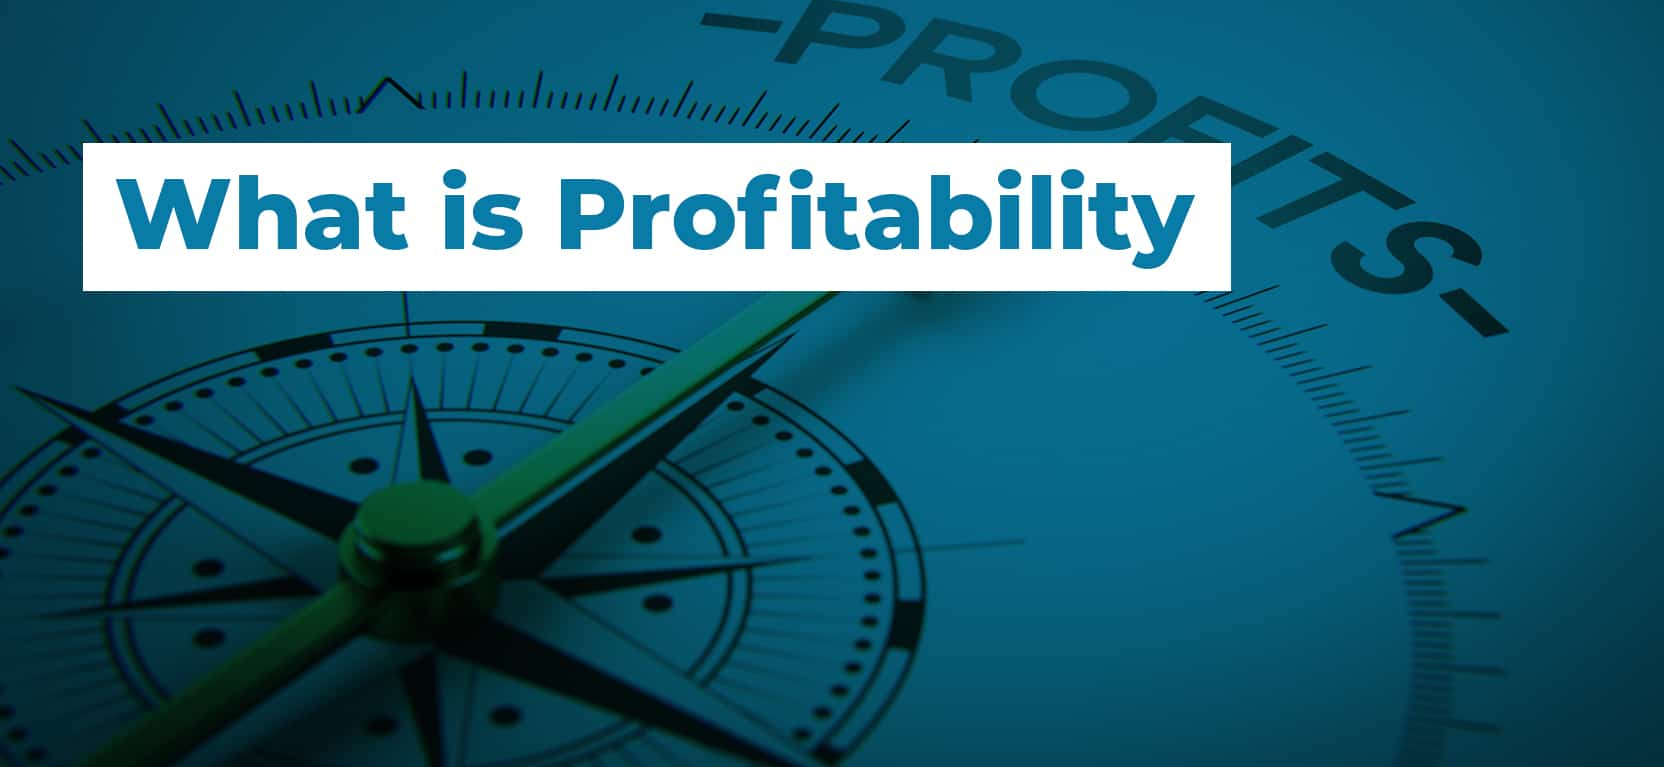 15 What is Profitability